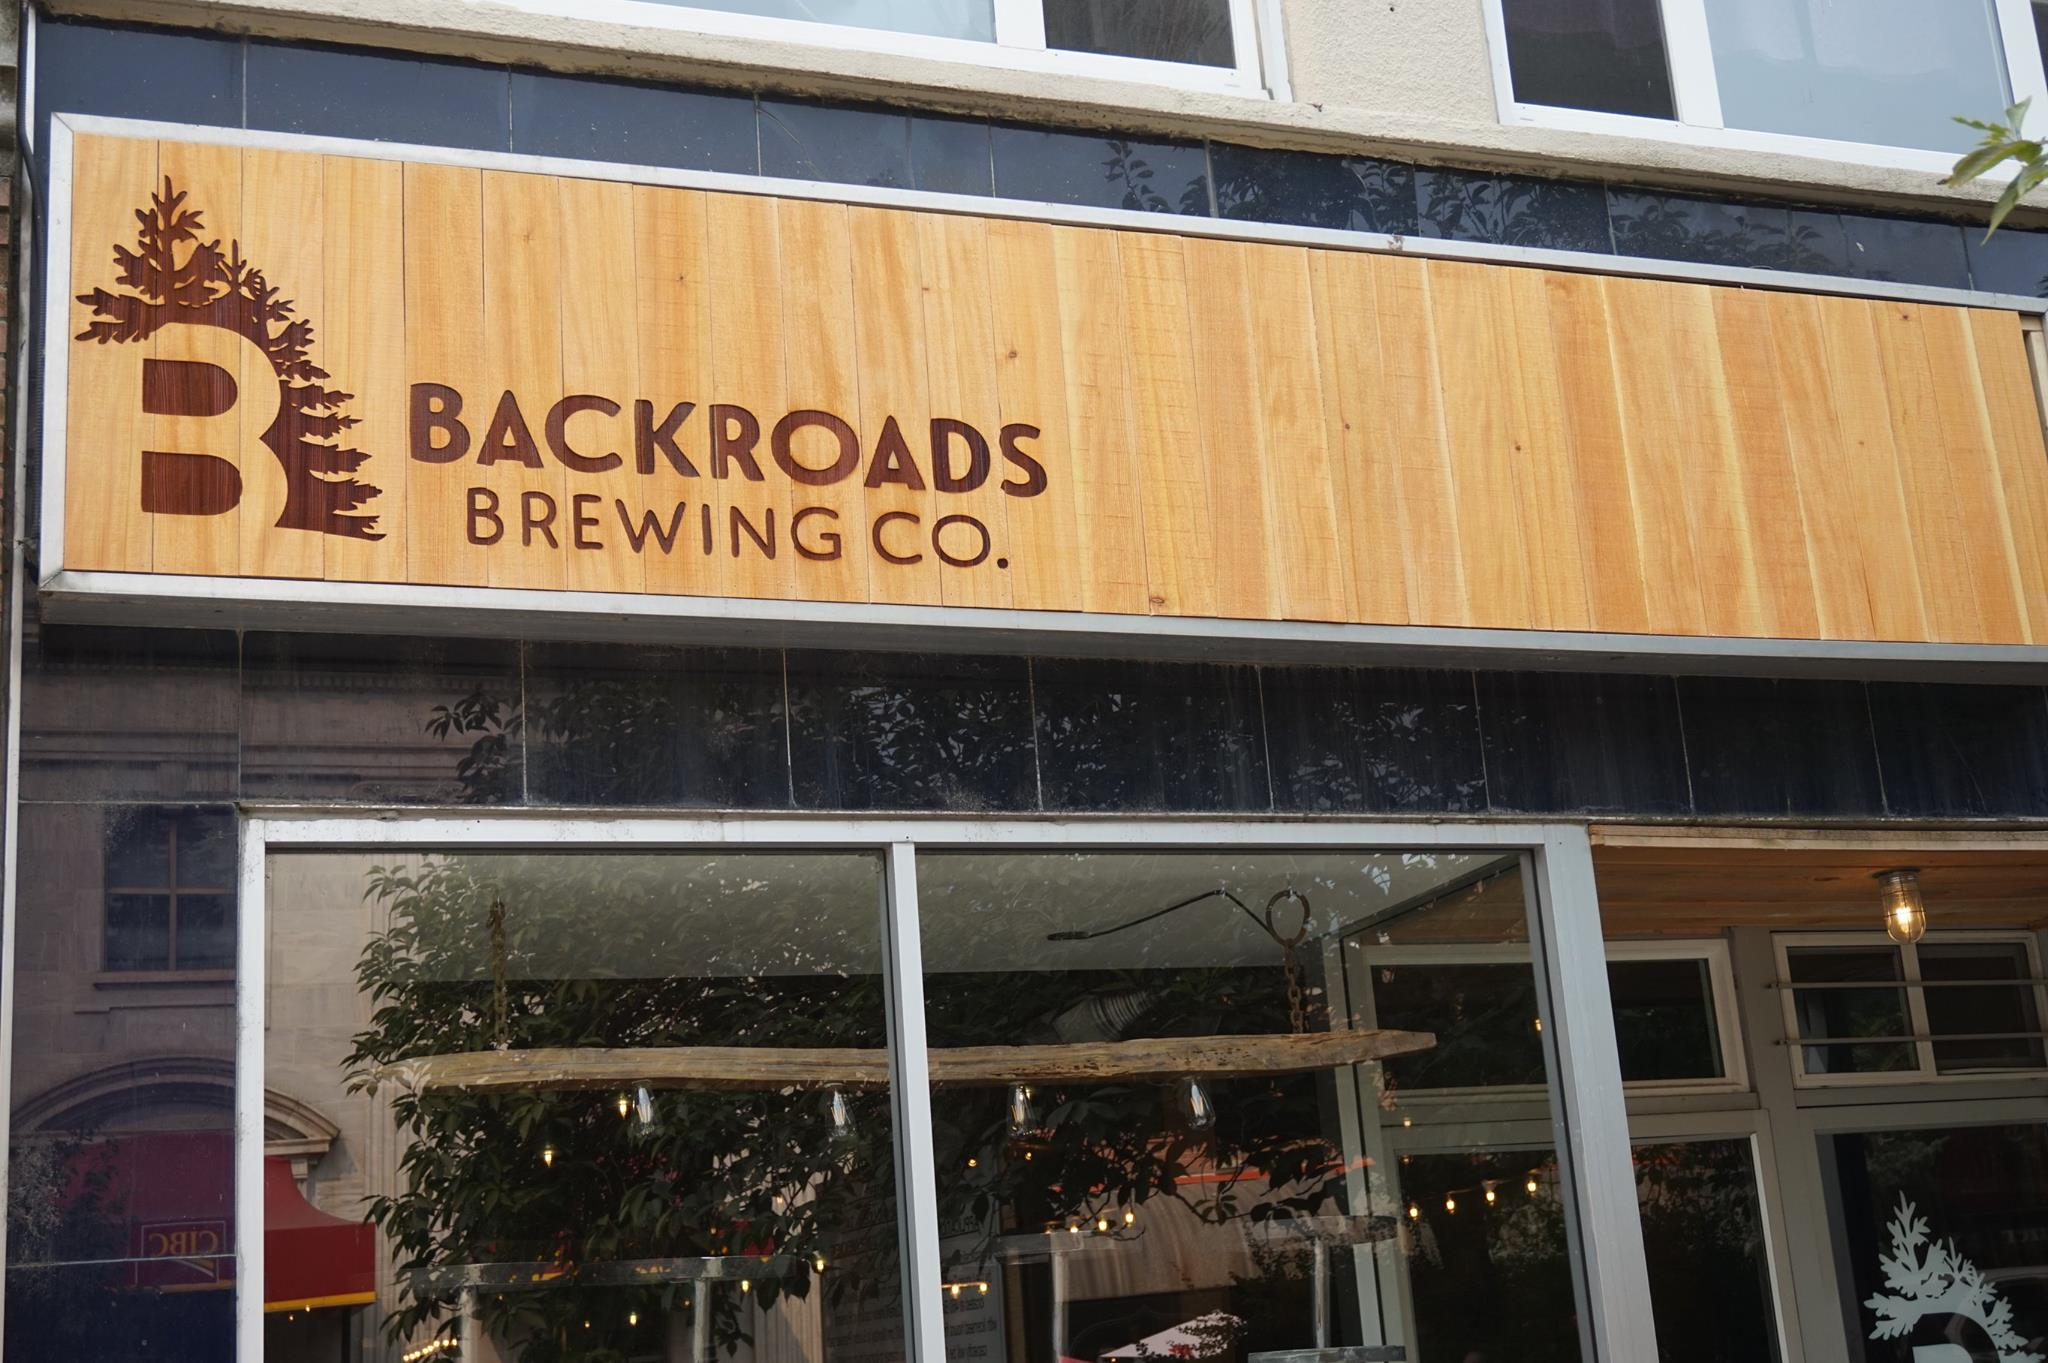 Backroads front sign 2.jpg